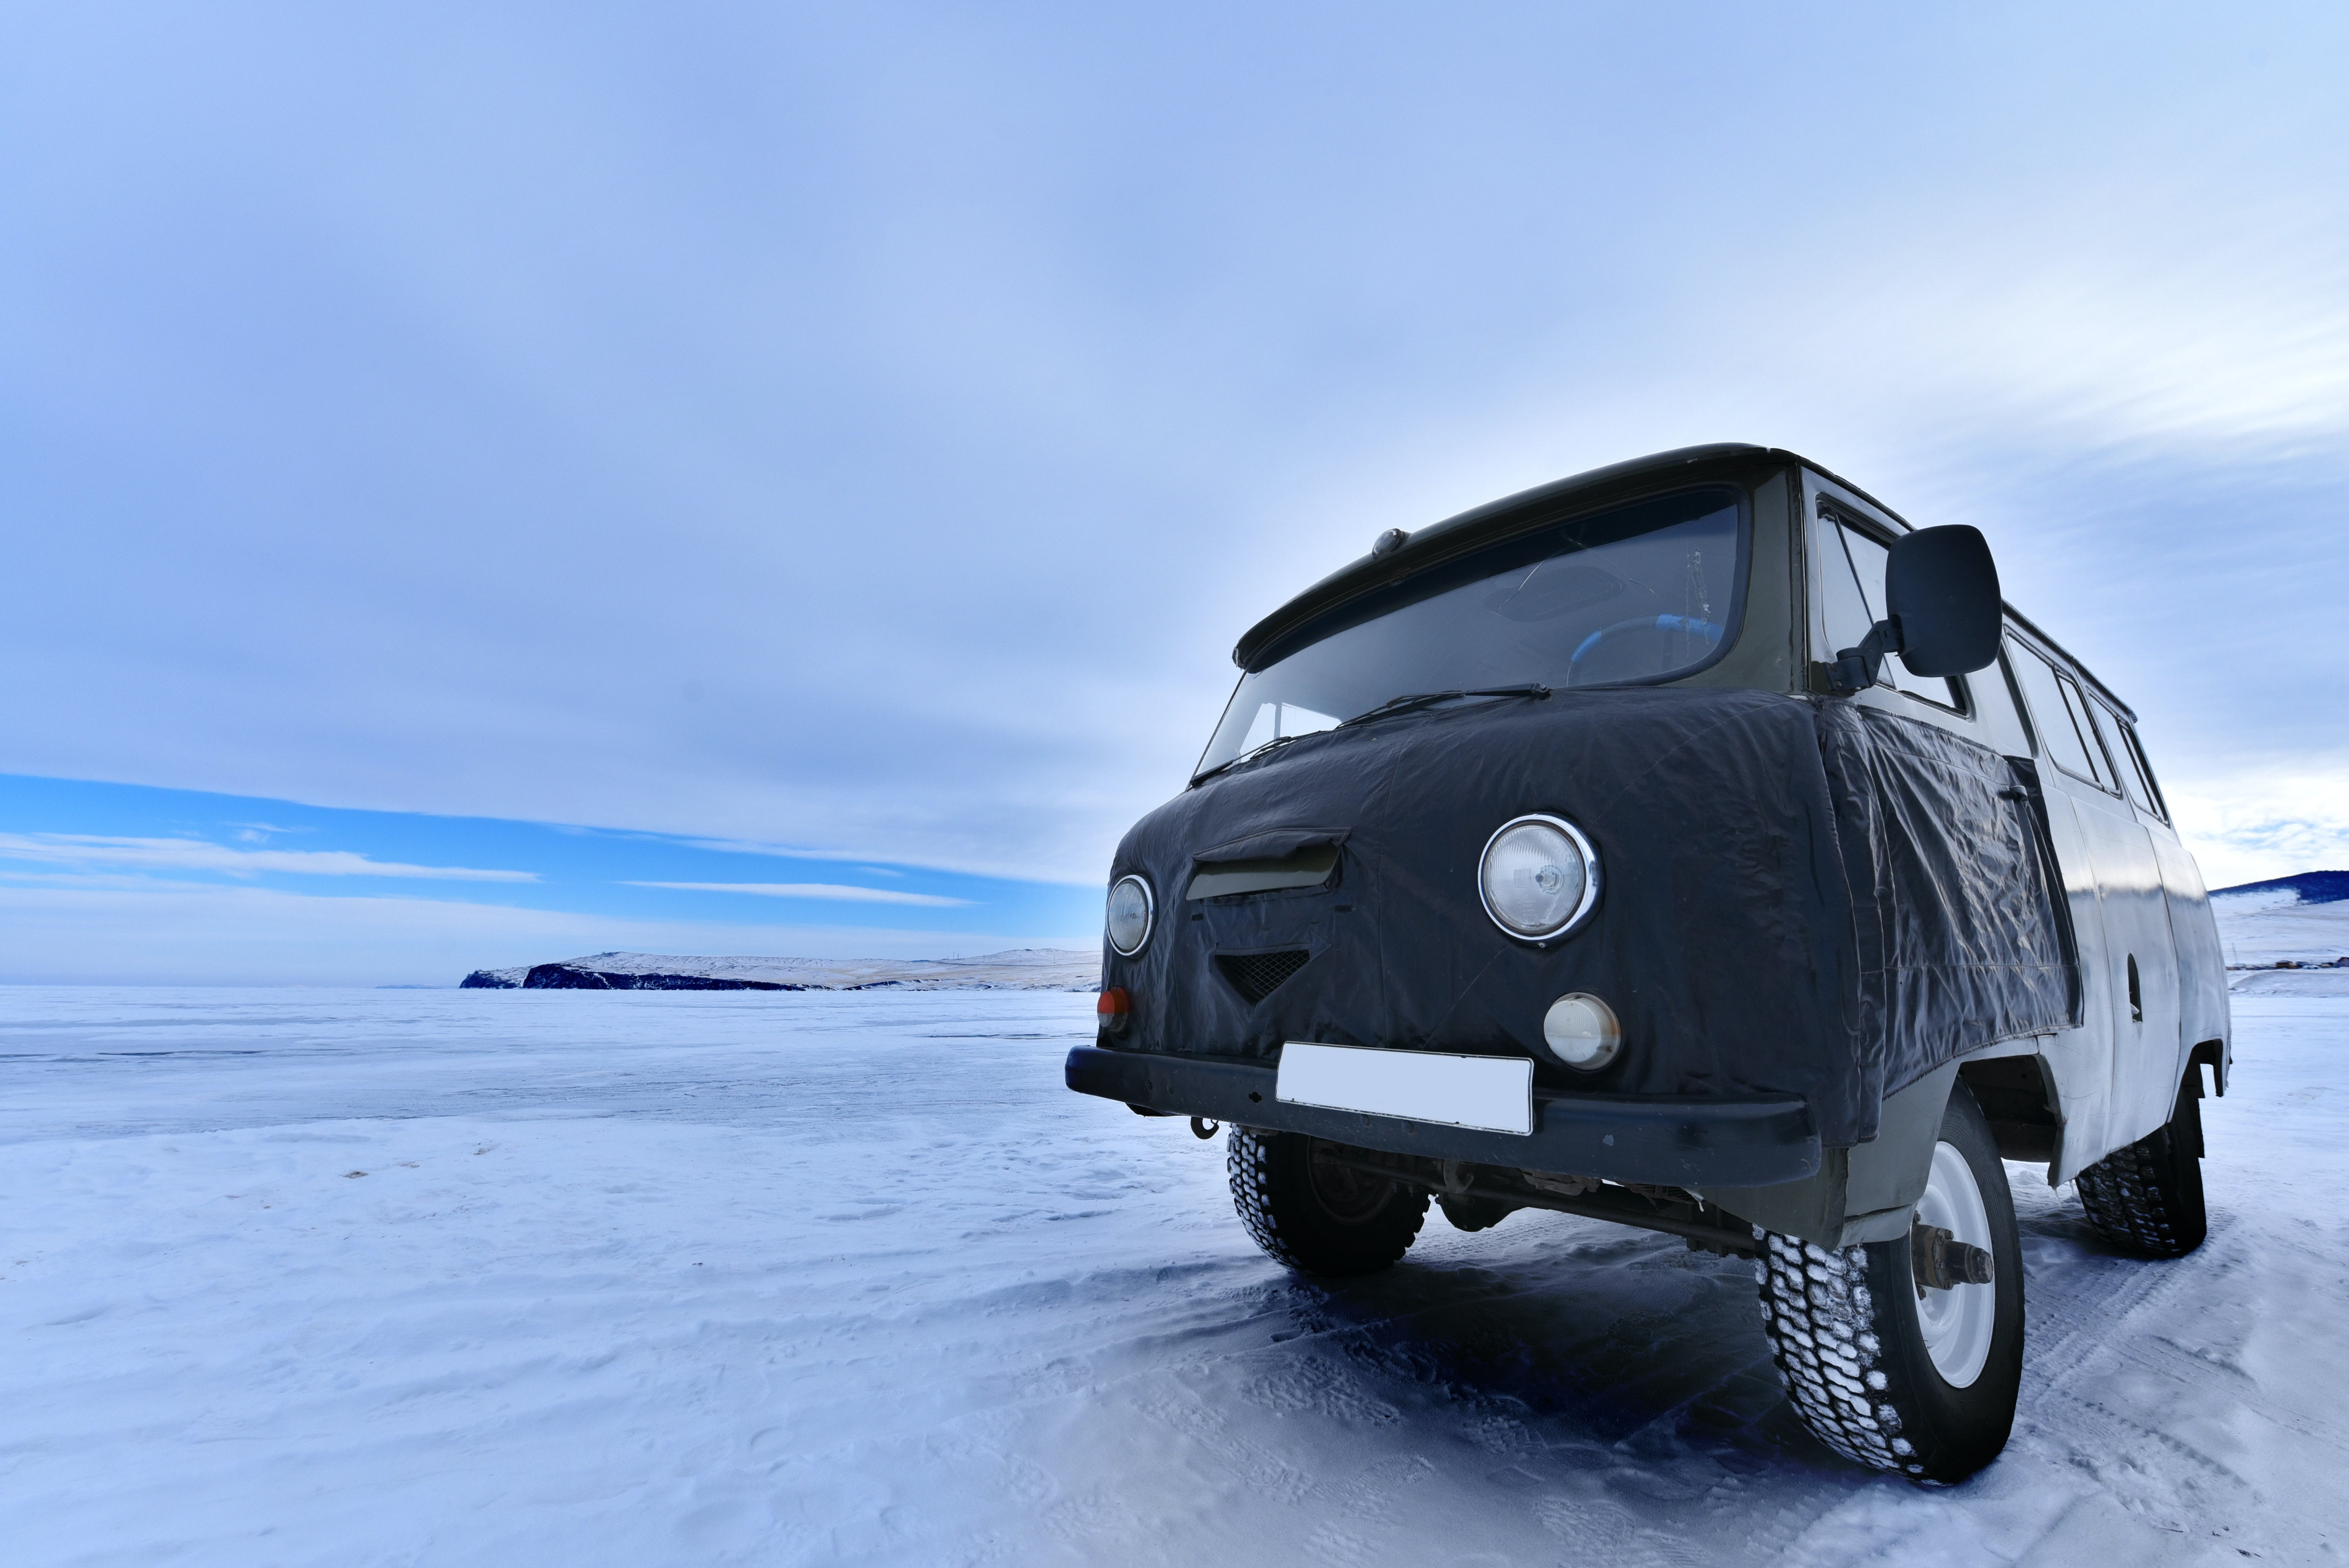 gray vehicle on snowfield duing daytime